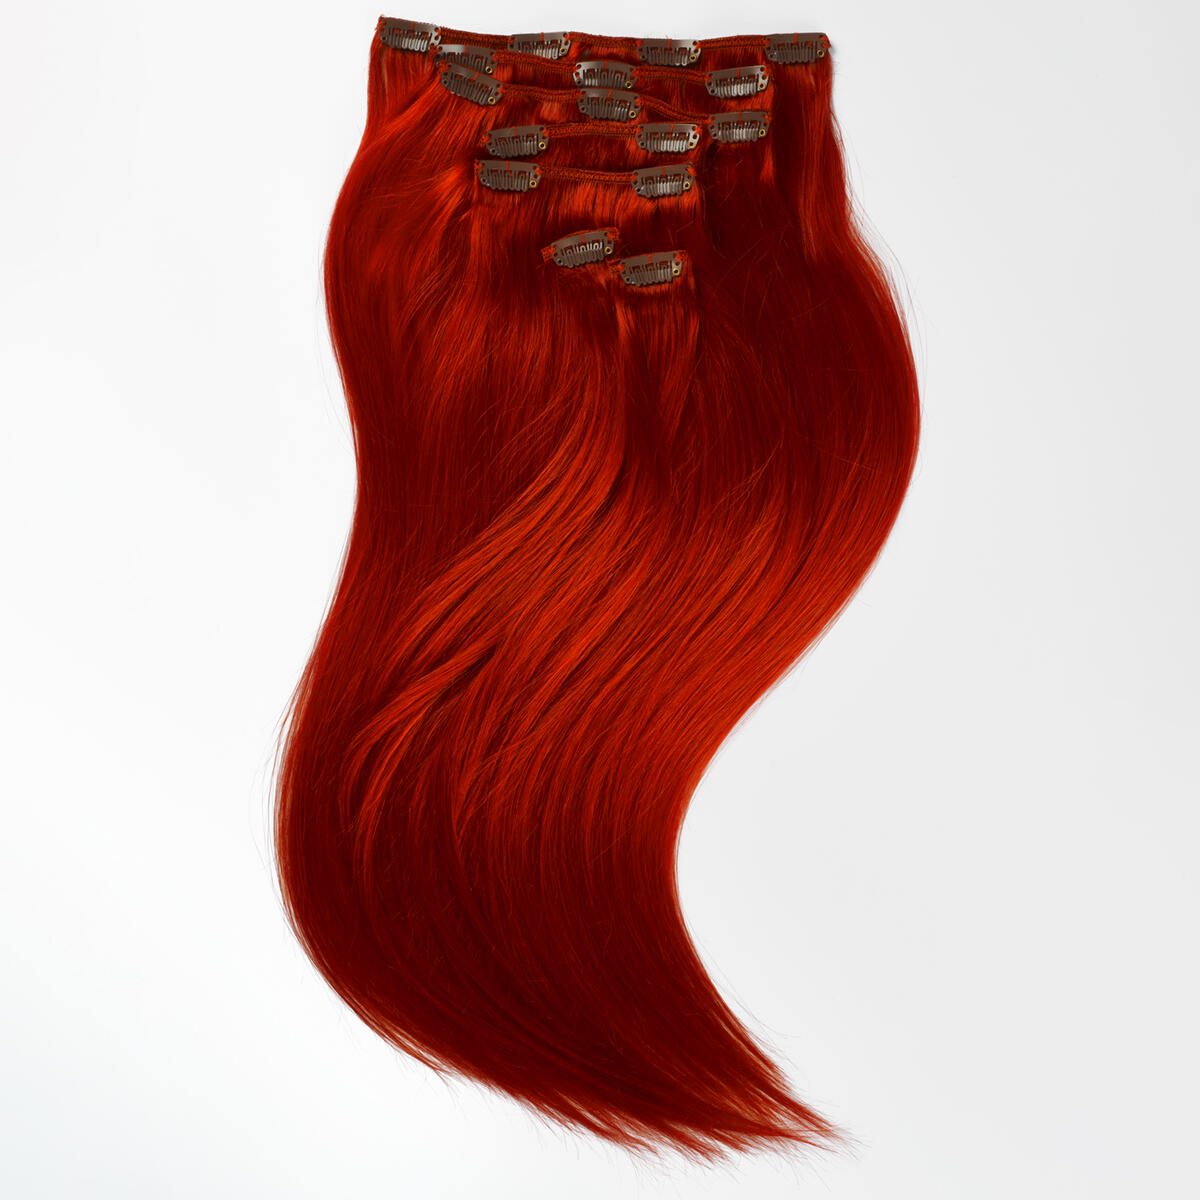 Clip-on set 6.0 Red Fire 40 cm